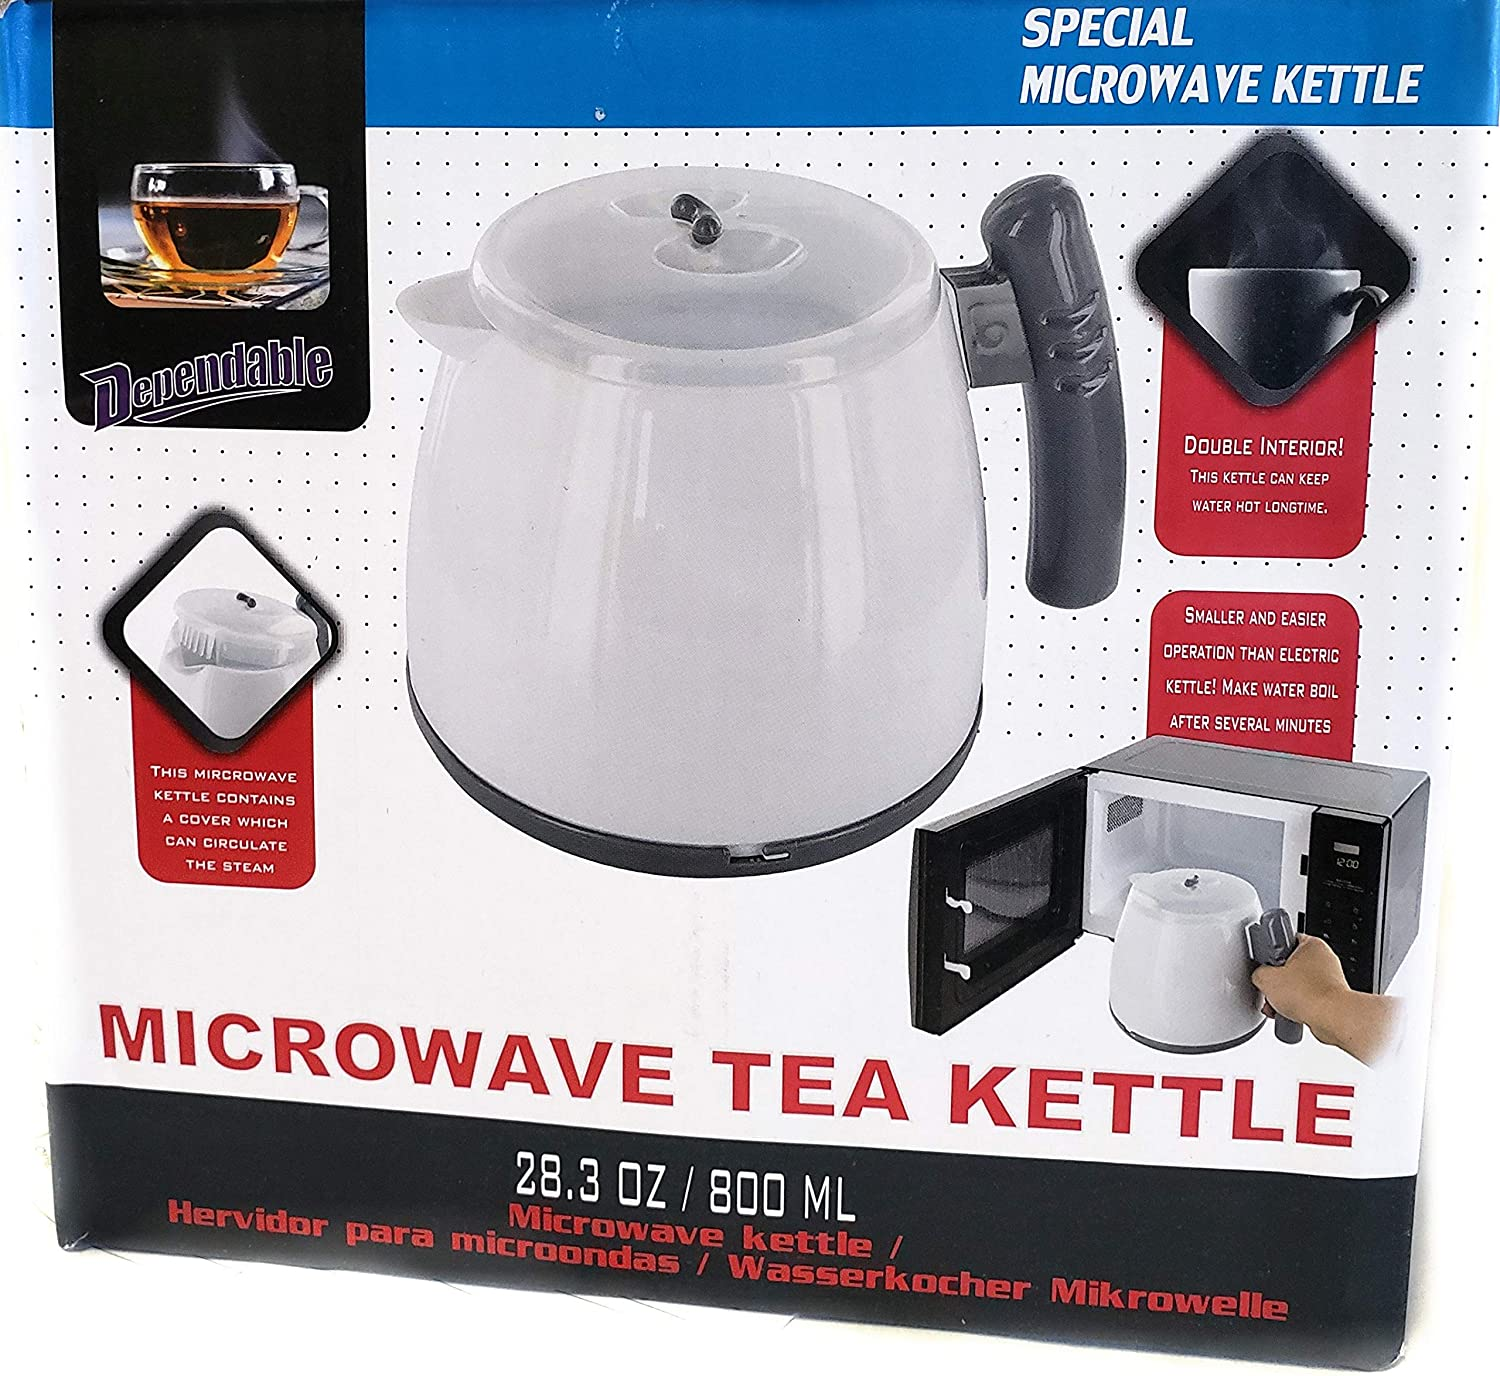 Microwave Tea Kettle Hot Pot Water Boiler 28 Ounce (800ML)